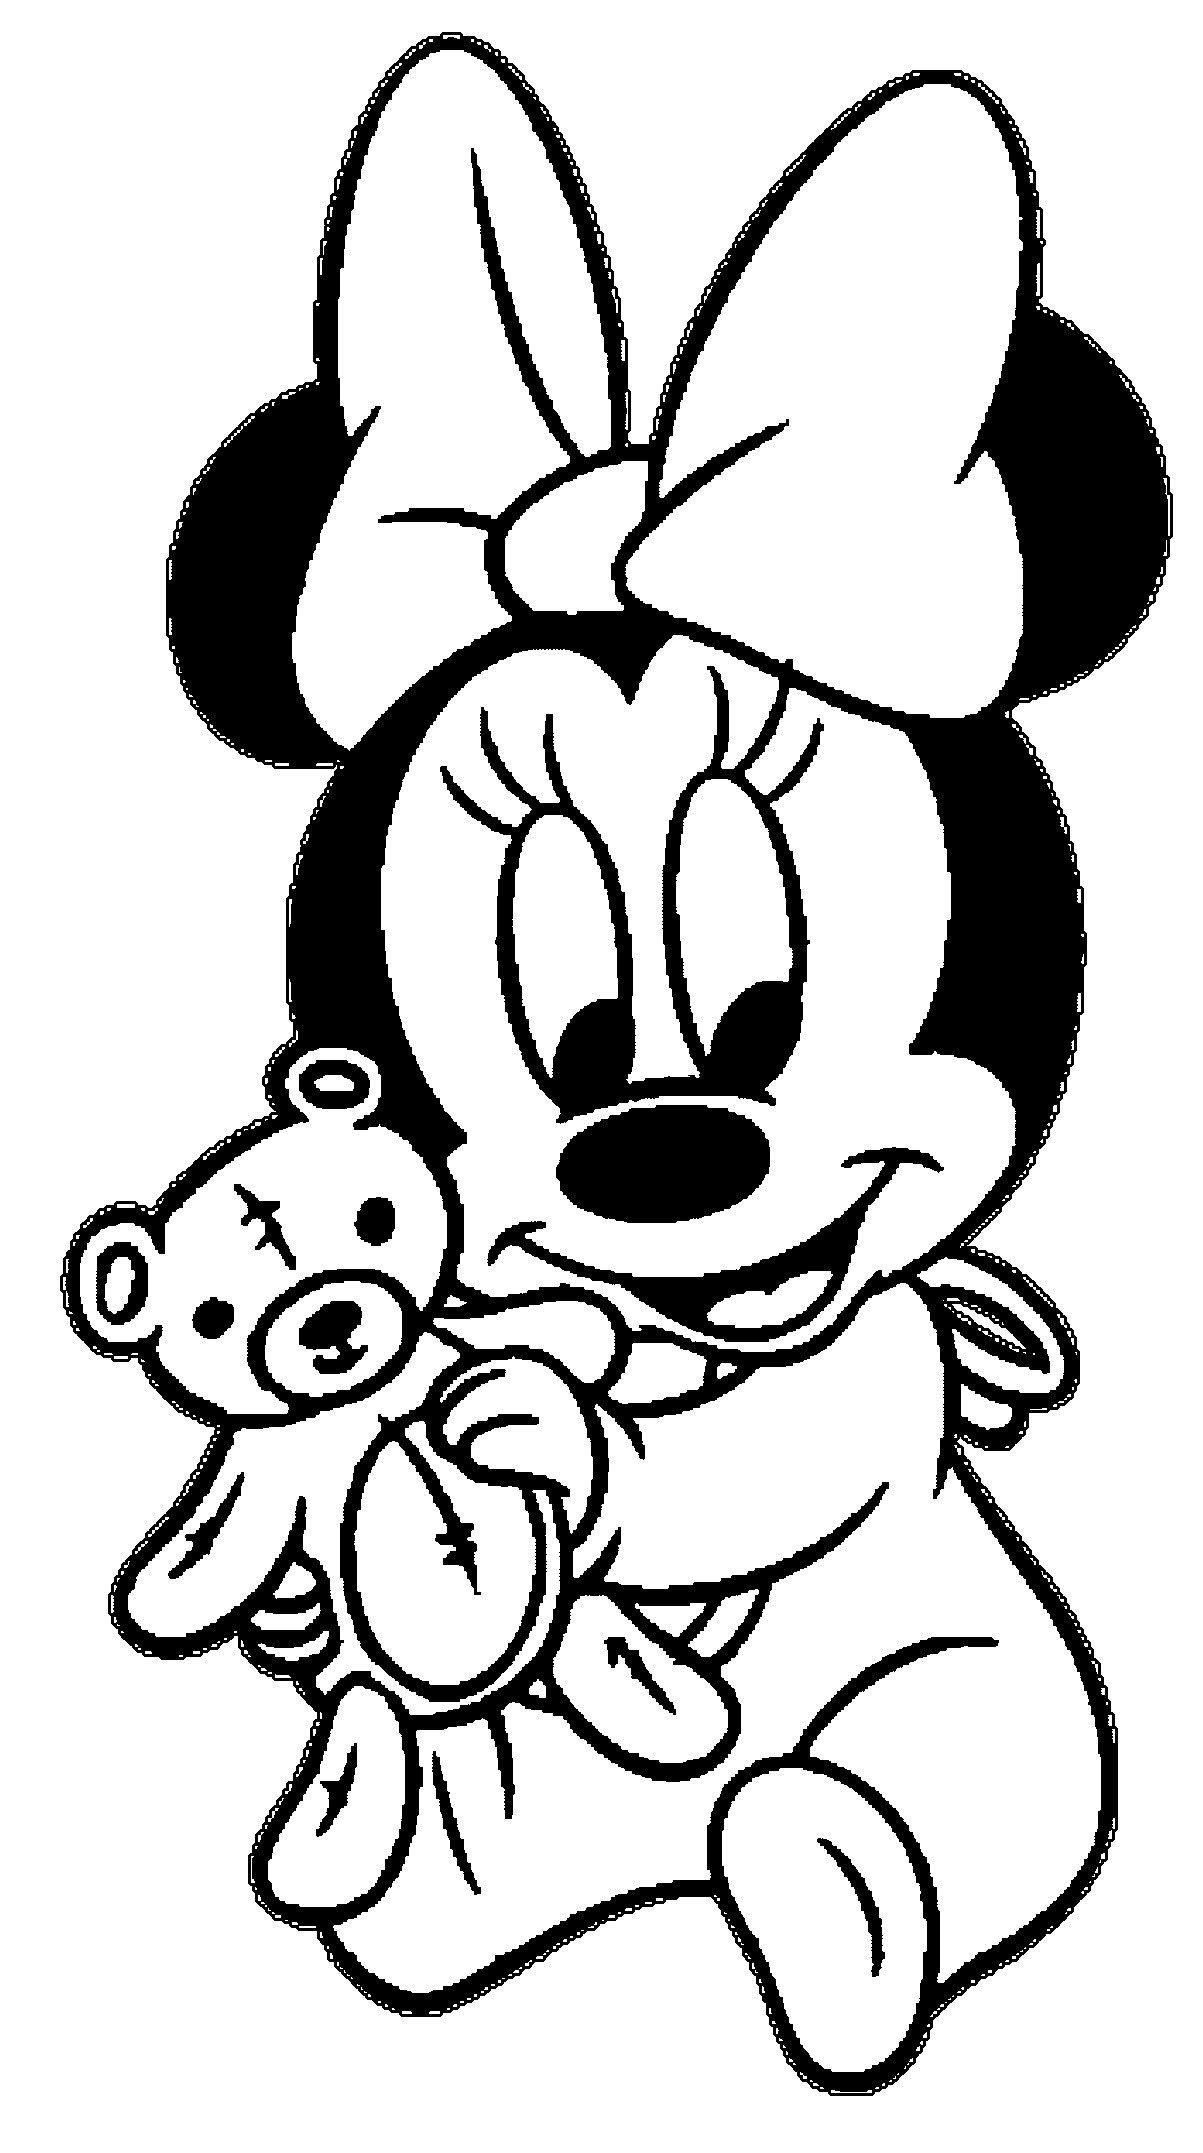 Minnie Baby Coloring Pages 2 By Sean Tekeningen Disney Figuren Cartoon Tekeningen Tekentutorials